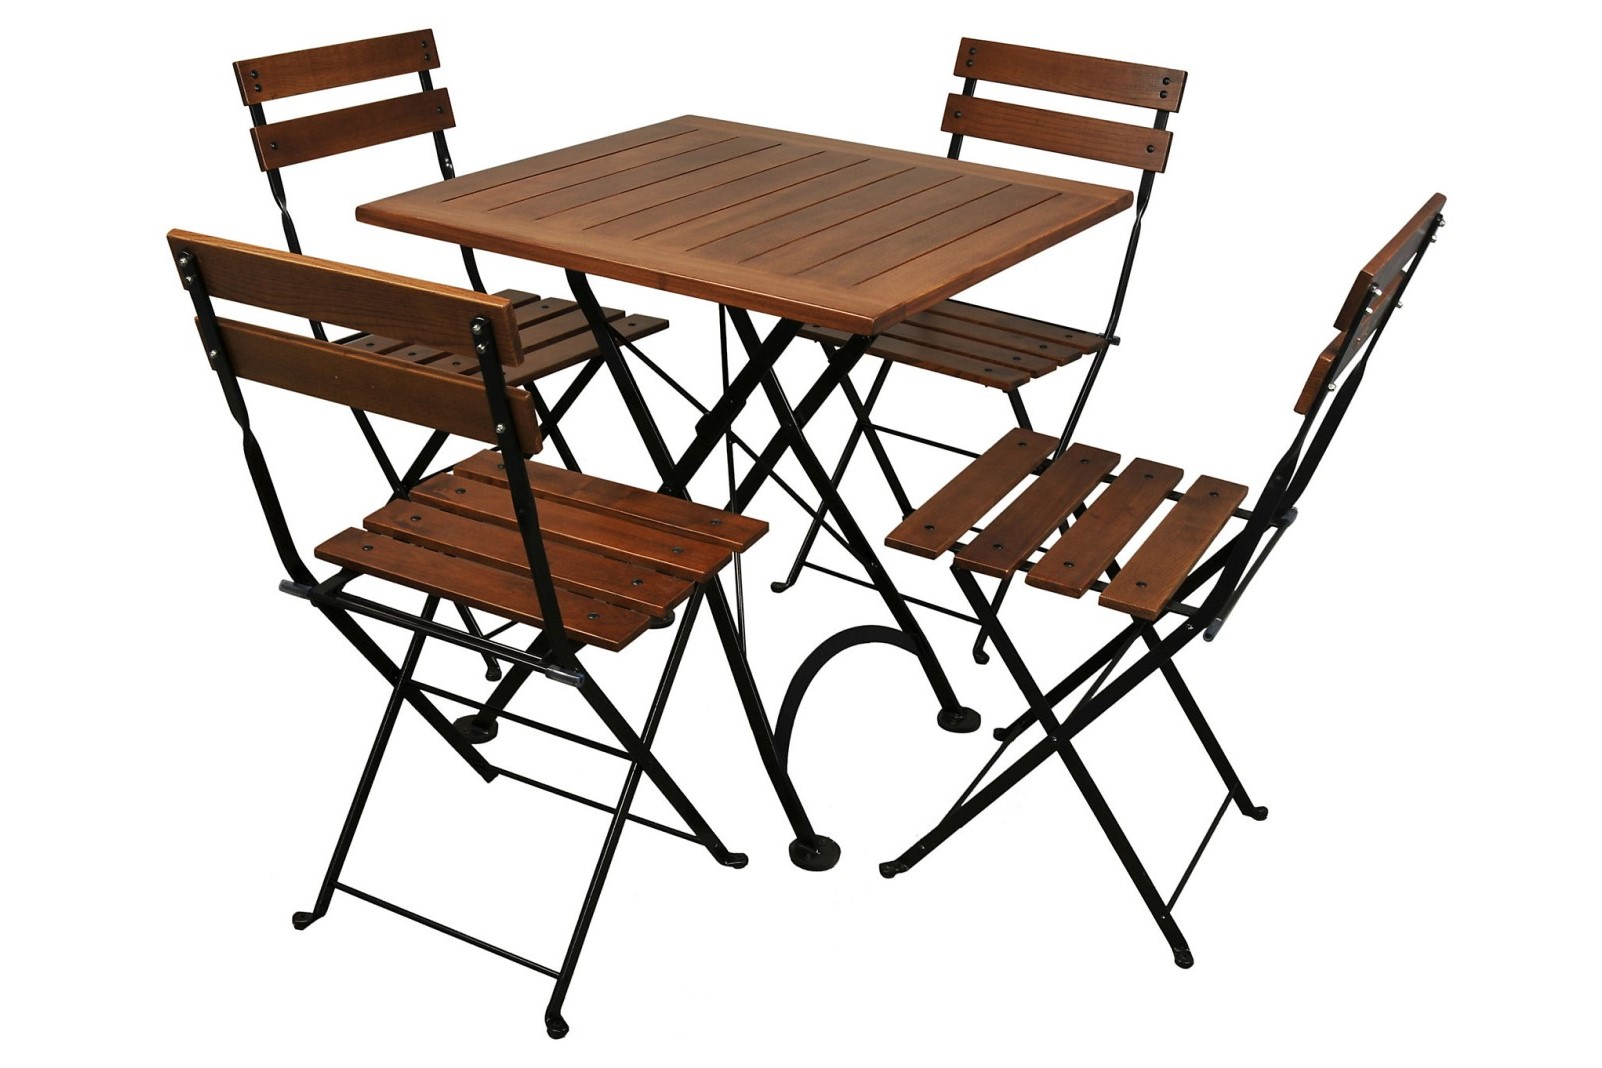 4113CW-BK European Chestnut dining table and 5502CW-BK chairs